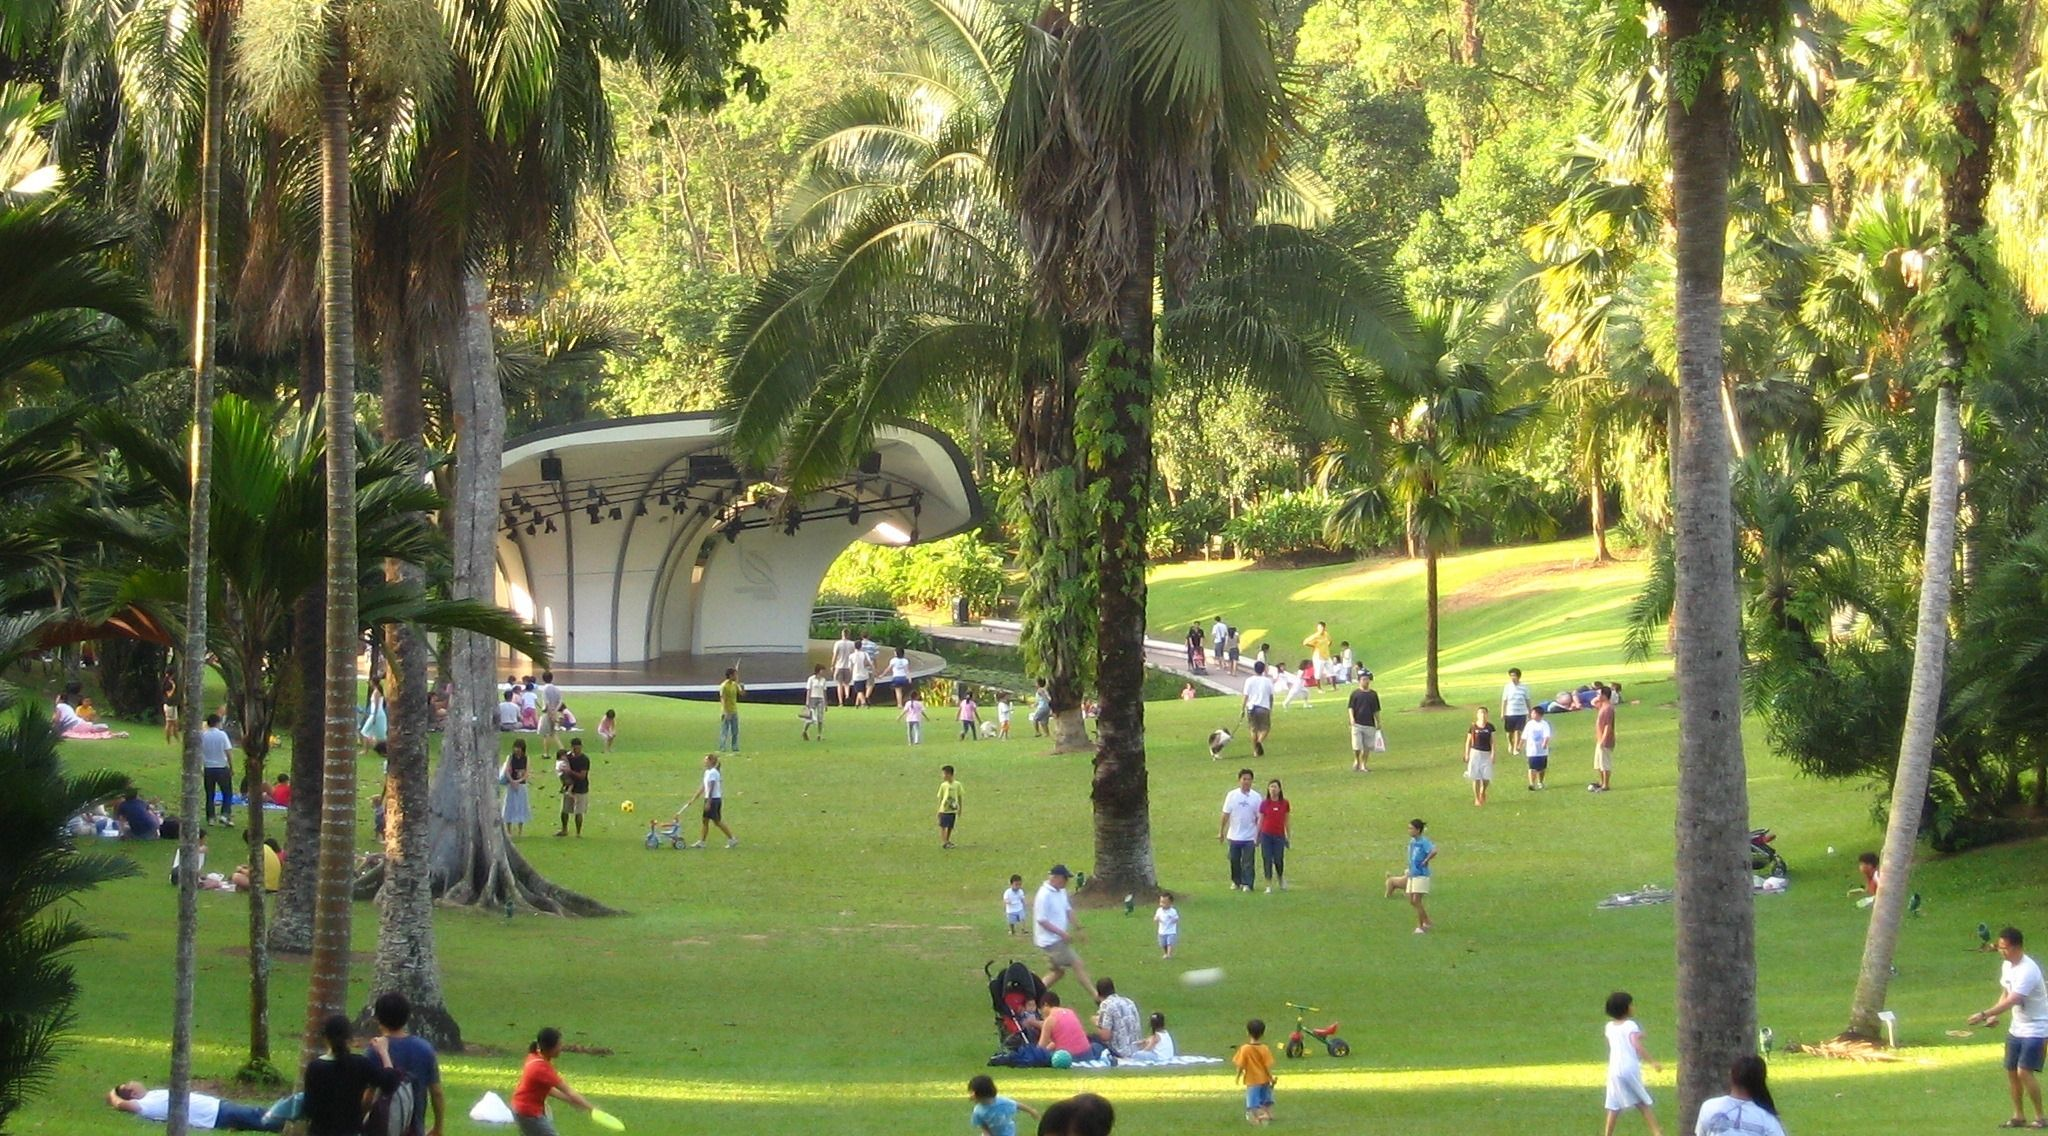 The best parks for picnics in Singapore | Singapore ...